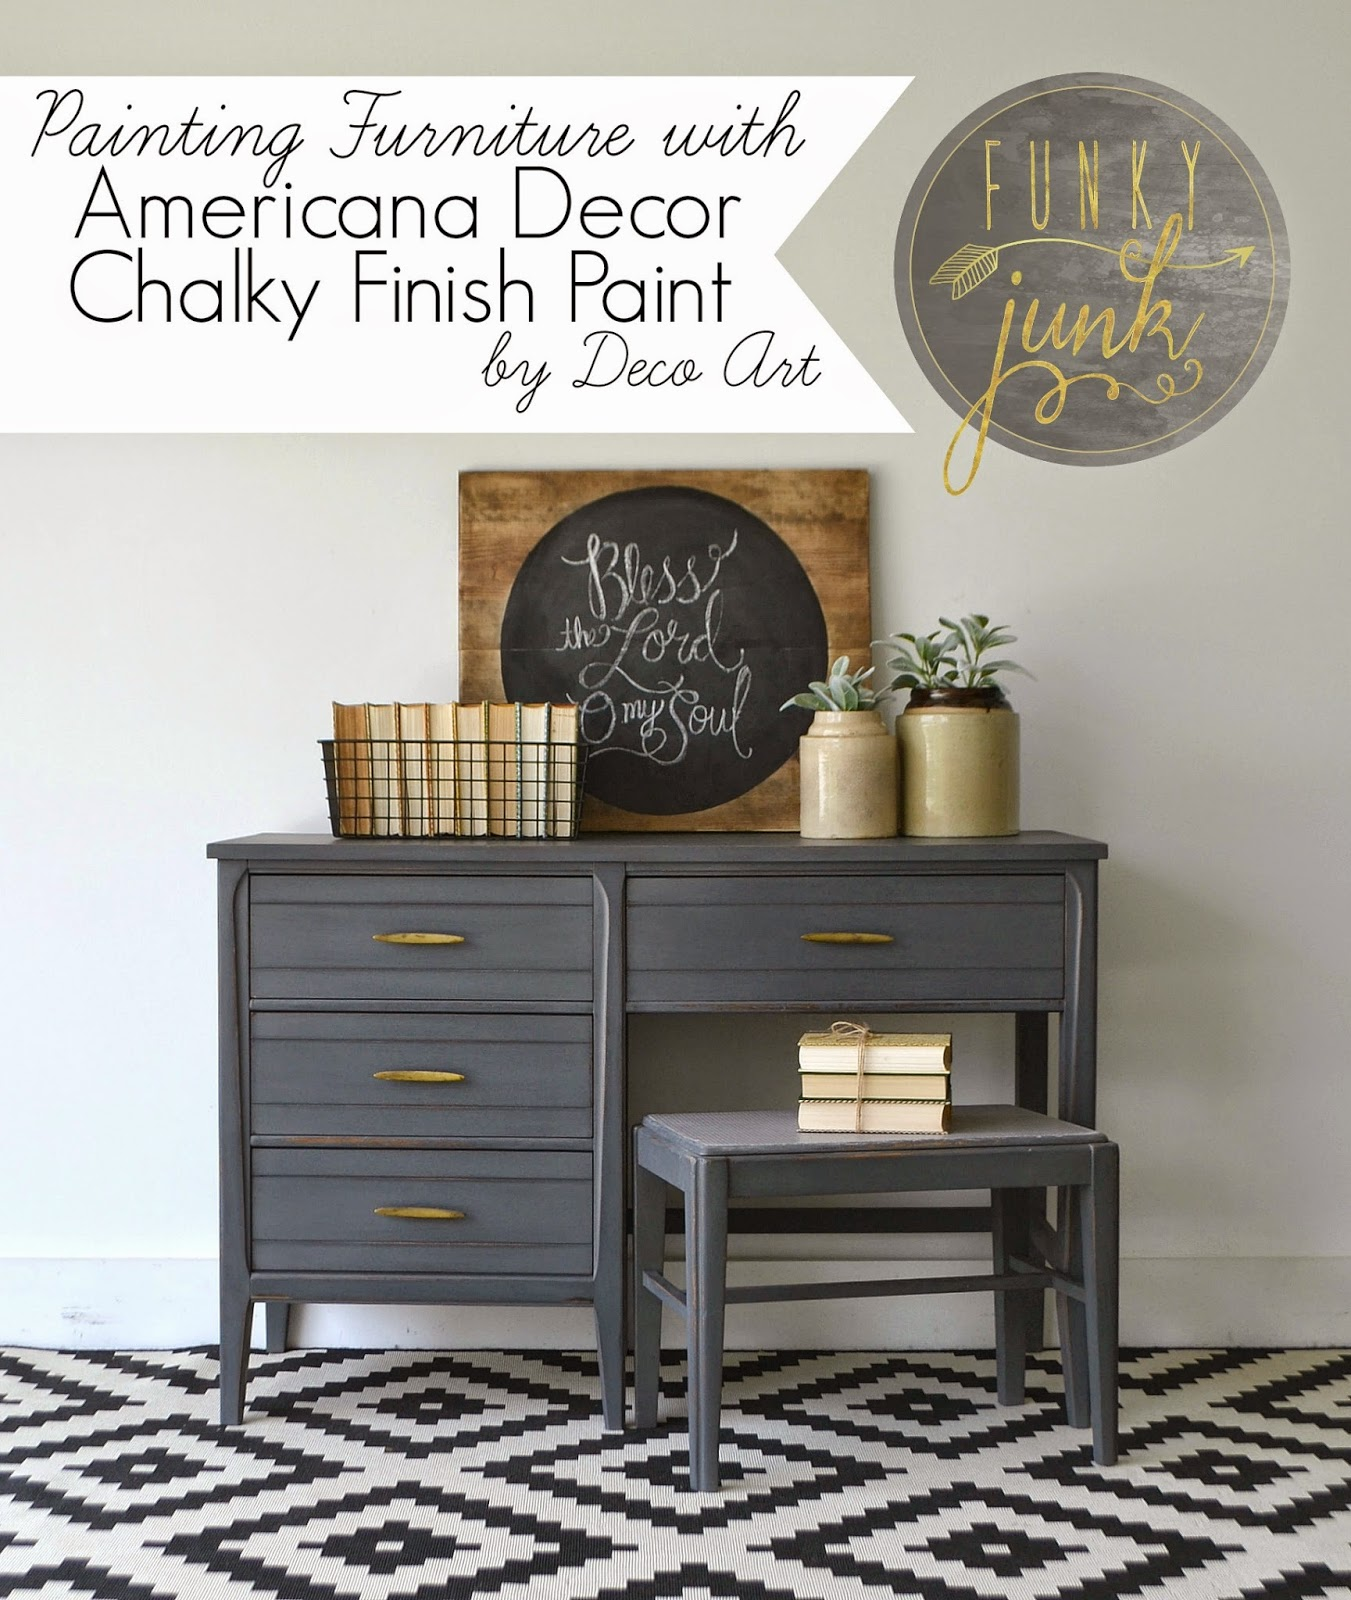 Painting Furniture with Deco Art Chalky Finish Paint. Funky Junk  Painting Furniture with Deco Art Chalky Finish Paint